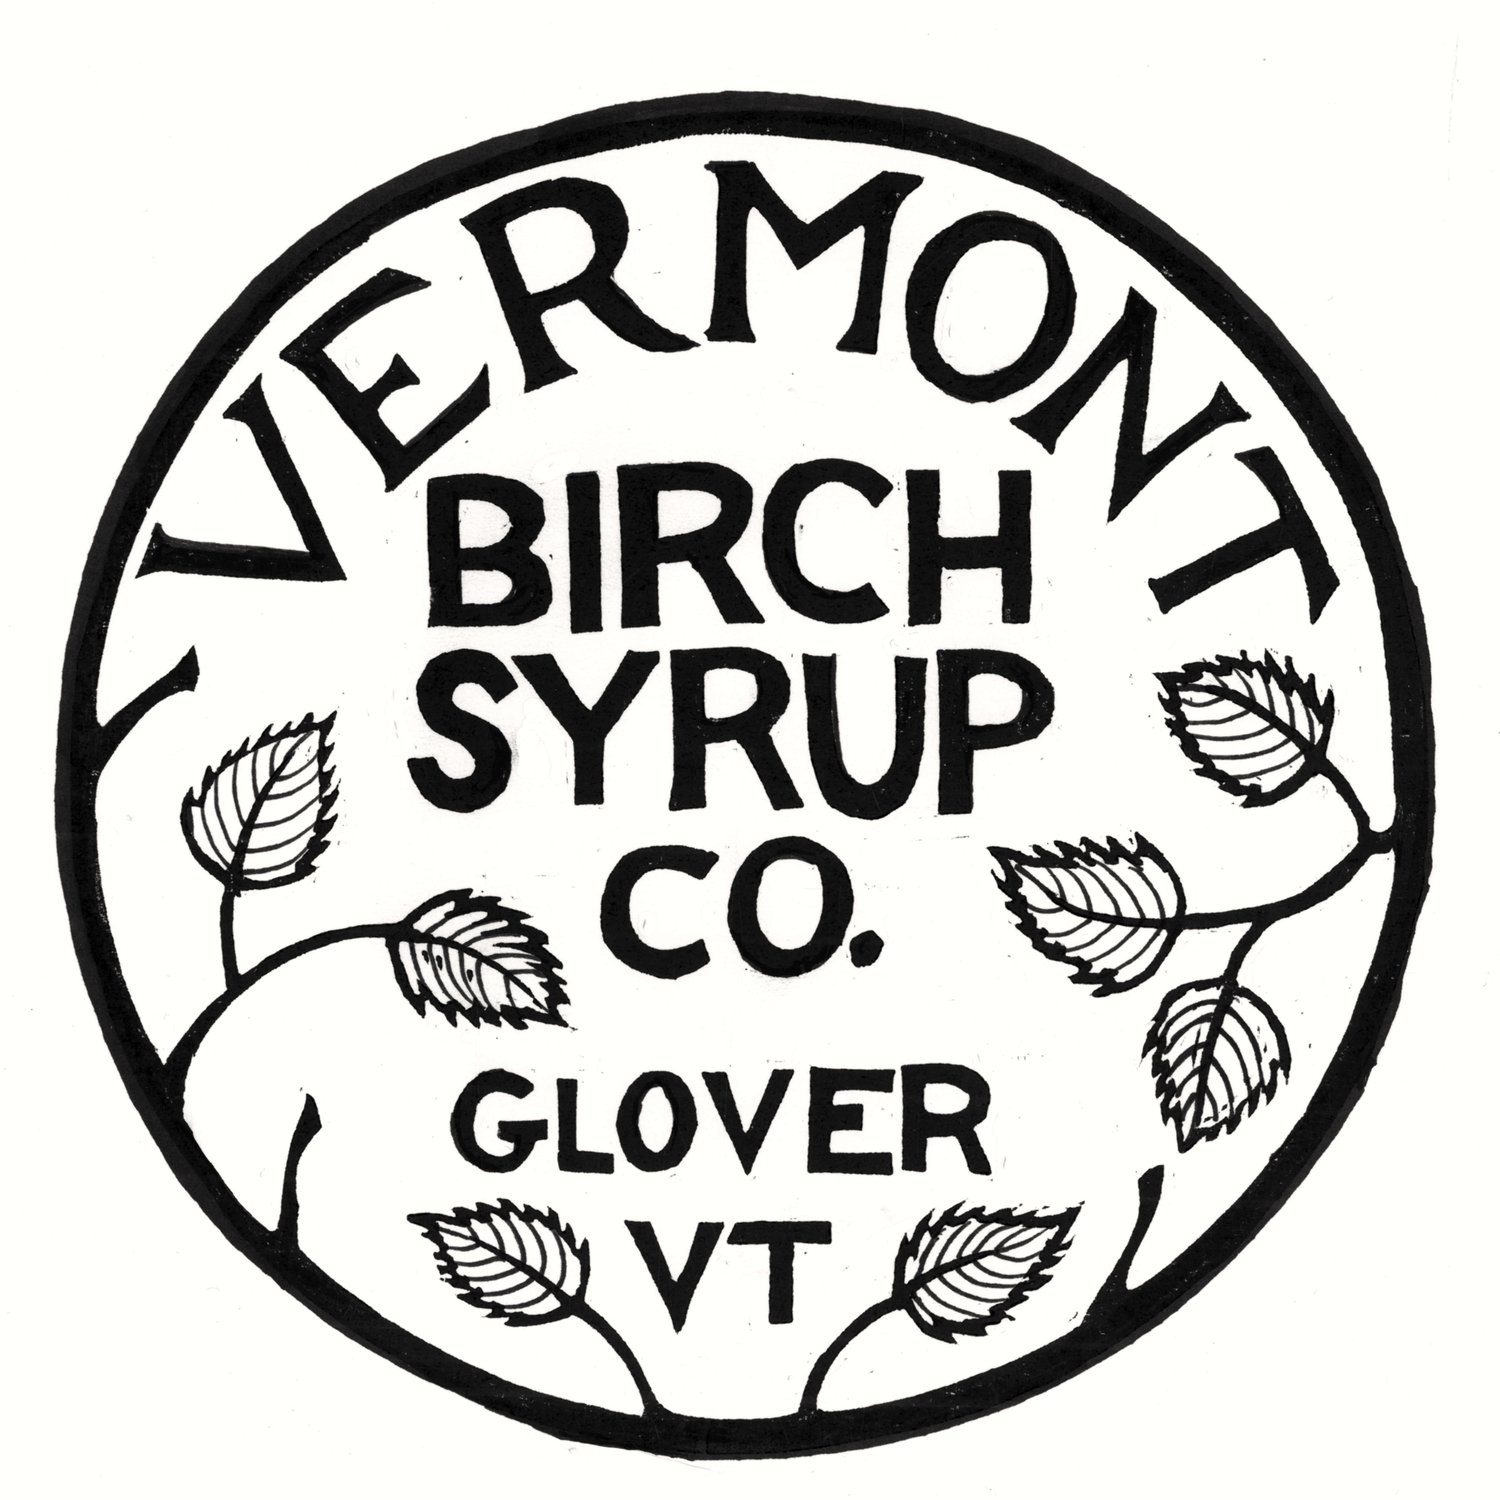 Vermont Birch Syrup Company